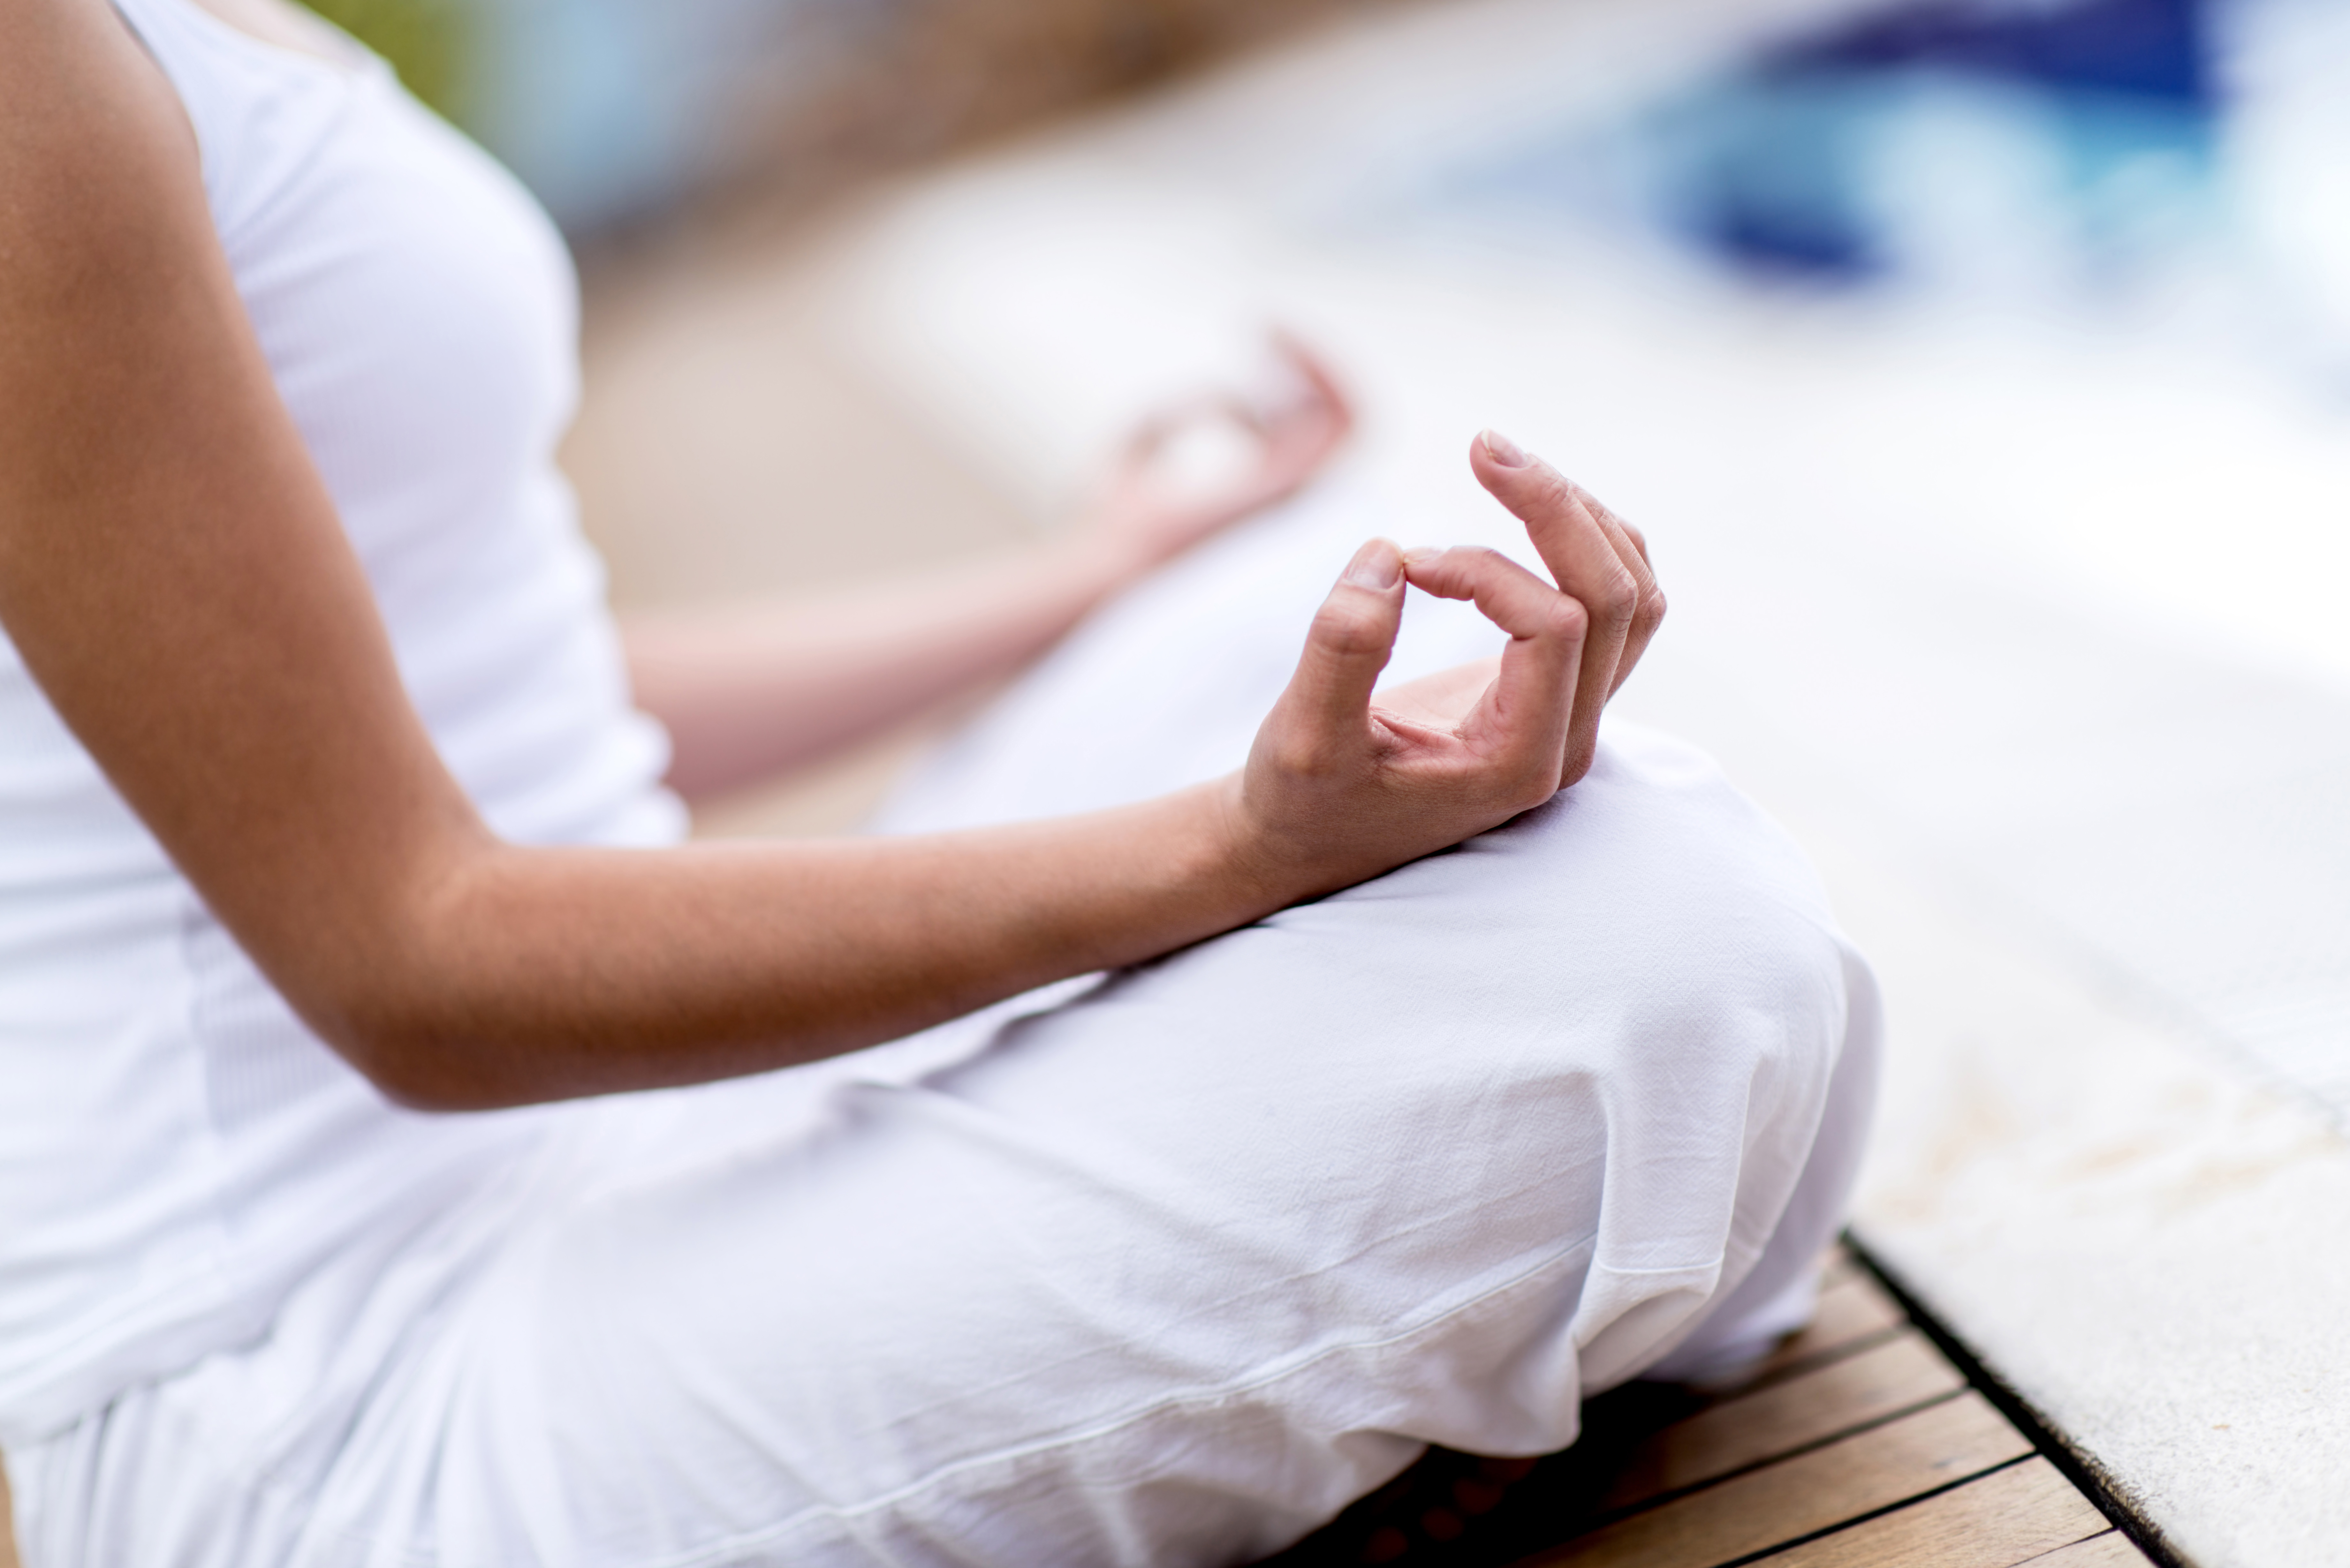 What science says about meditation: it improves your focus and emotional control